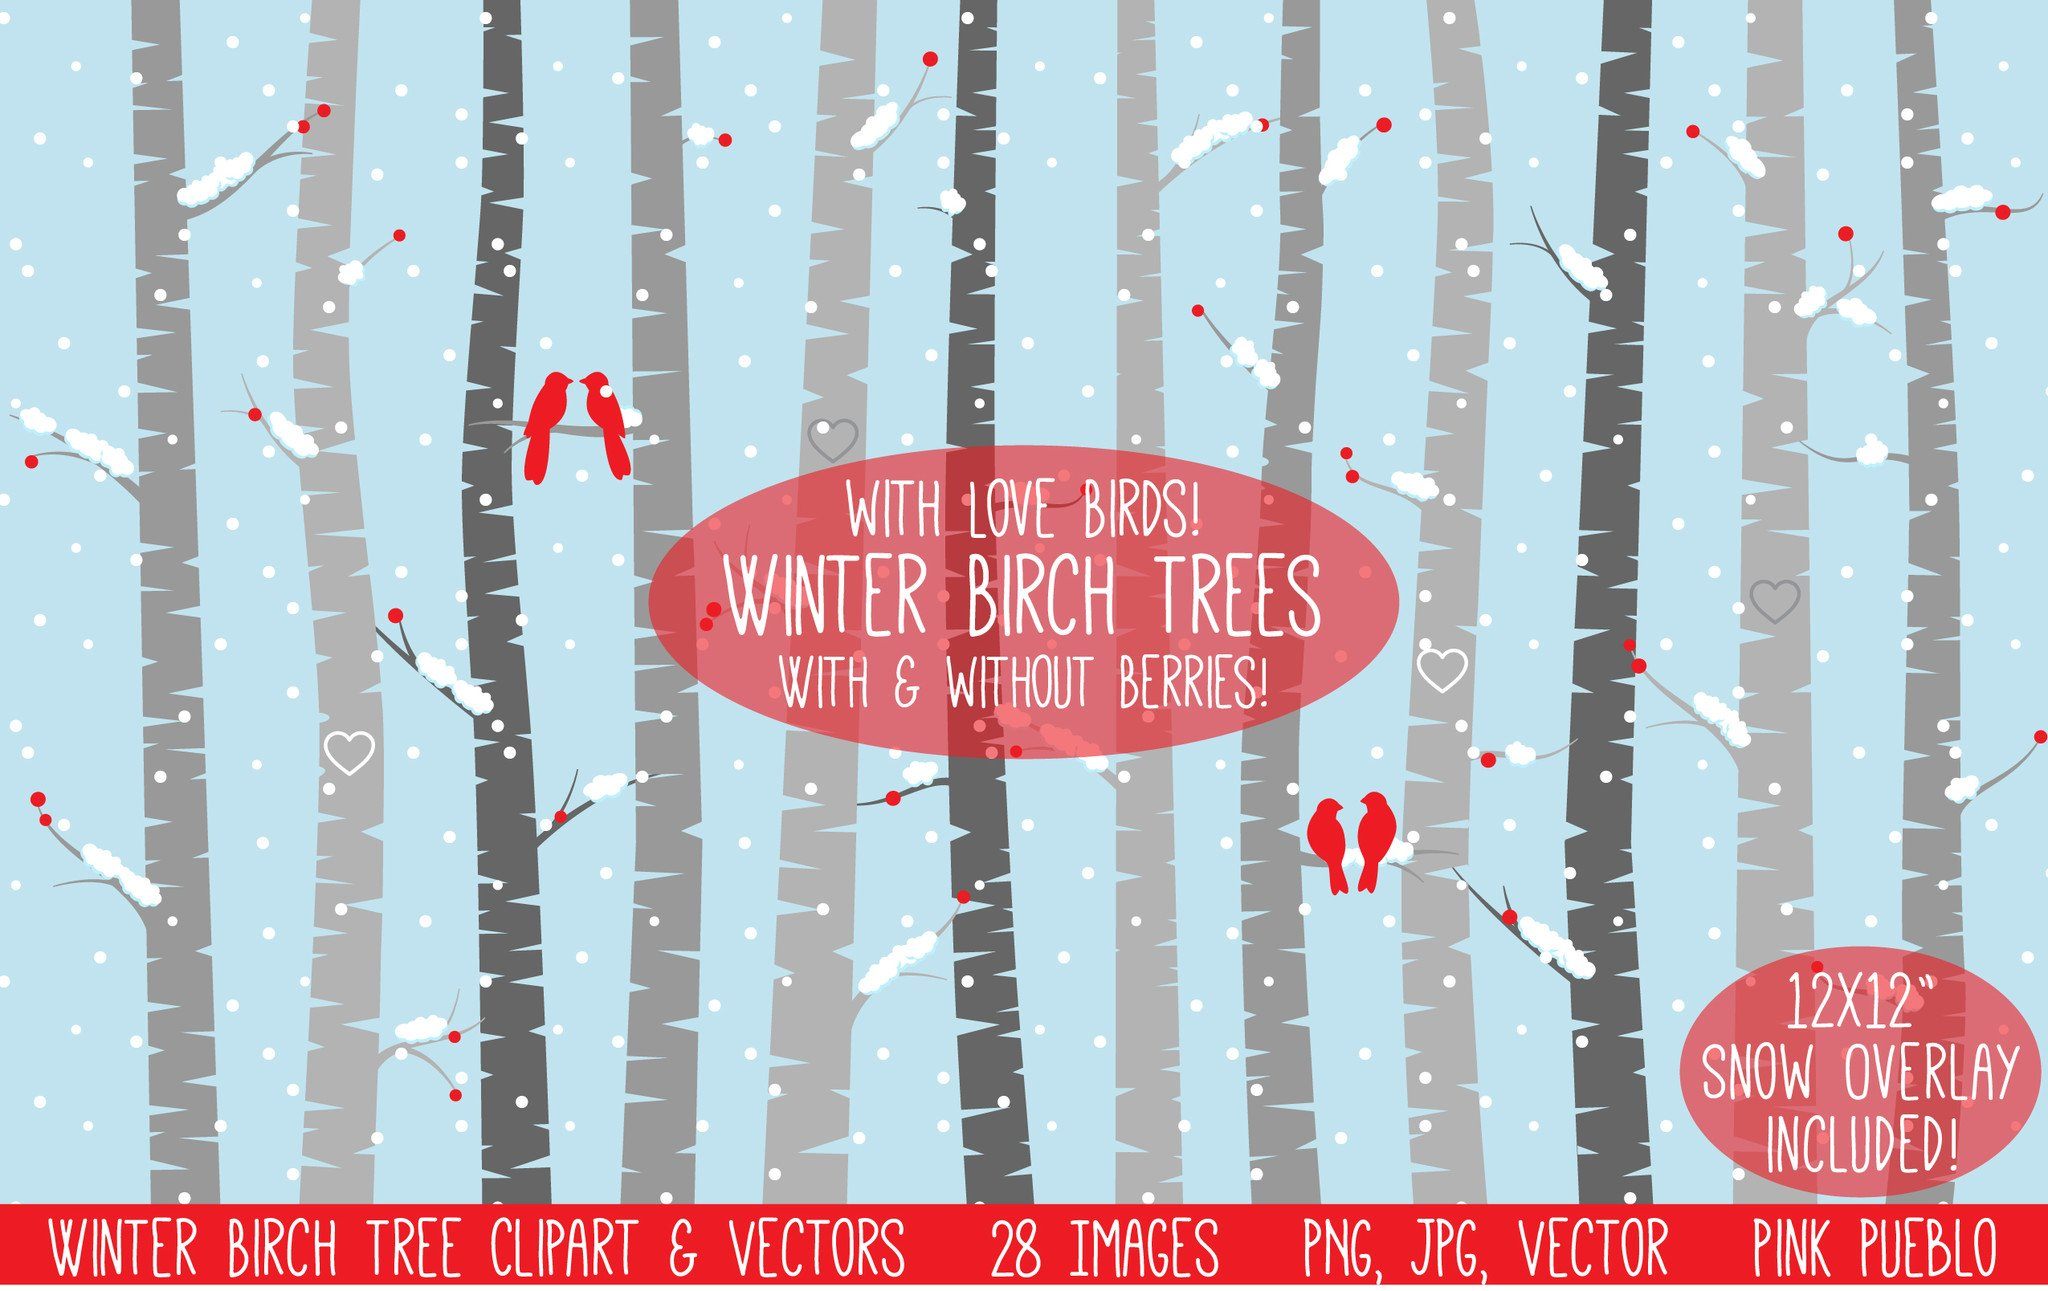 Winter birch tree clipart image royalty free library Winter Birch Tree Clipart & Vectors image royalty free library